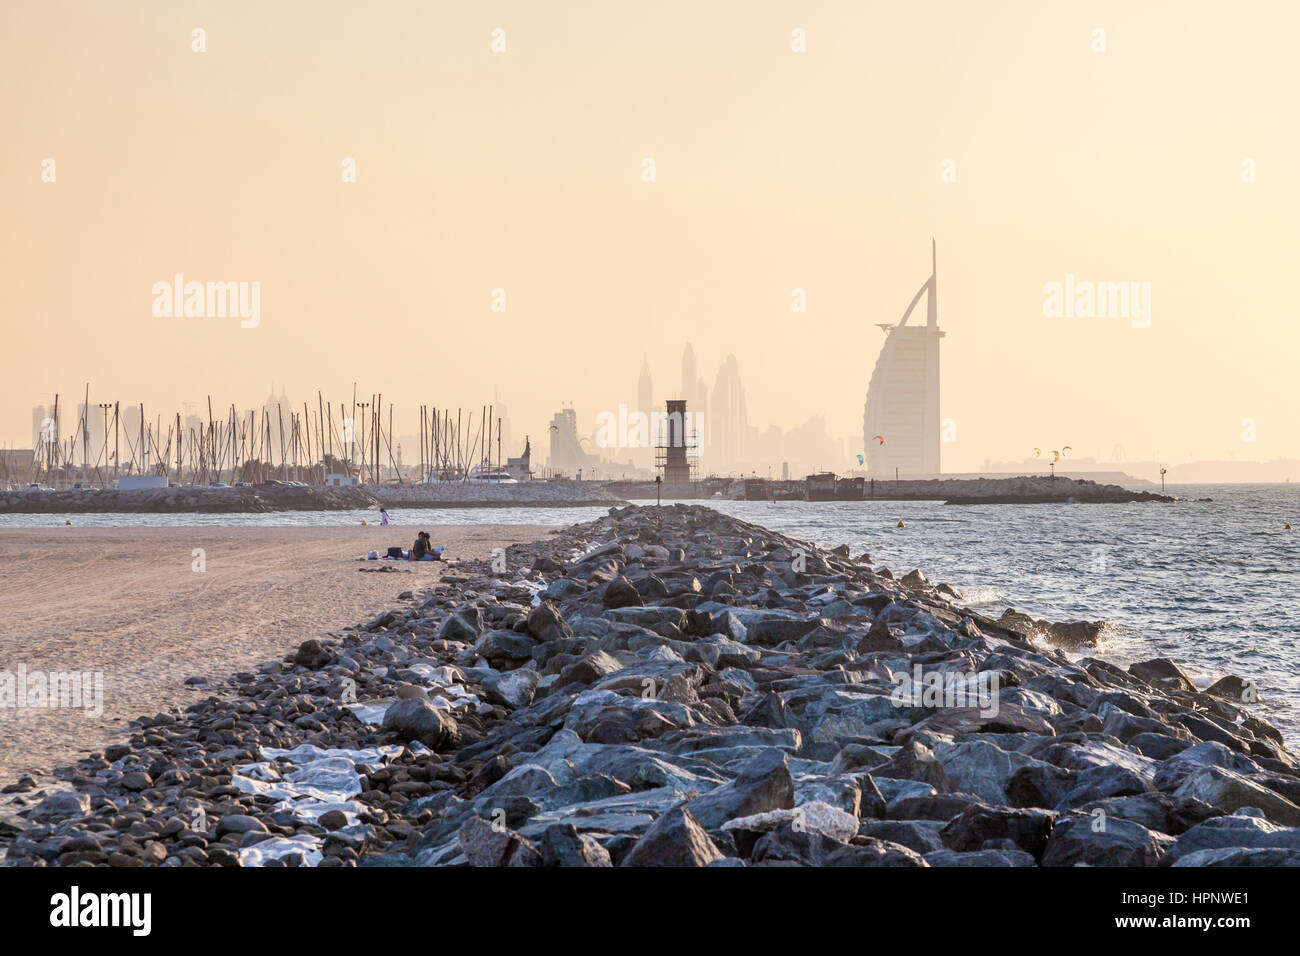 Public beach at the Persian Gulf coast and hotel Burj al Arab in Dubai. United Arab Emirates, Middle East - Stock Image